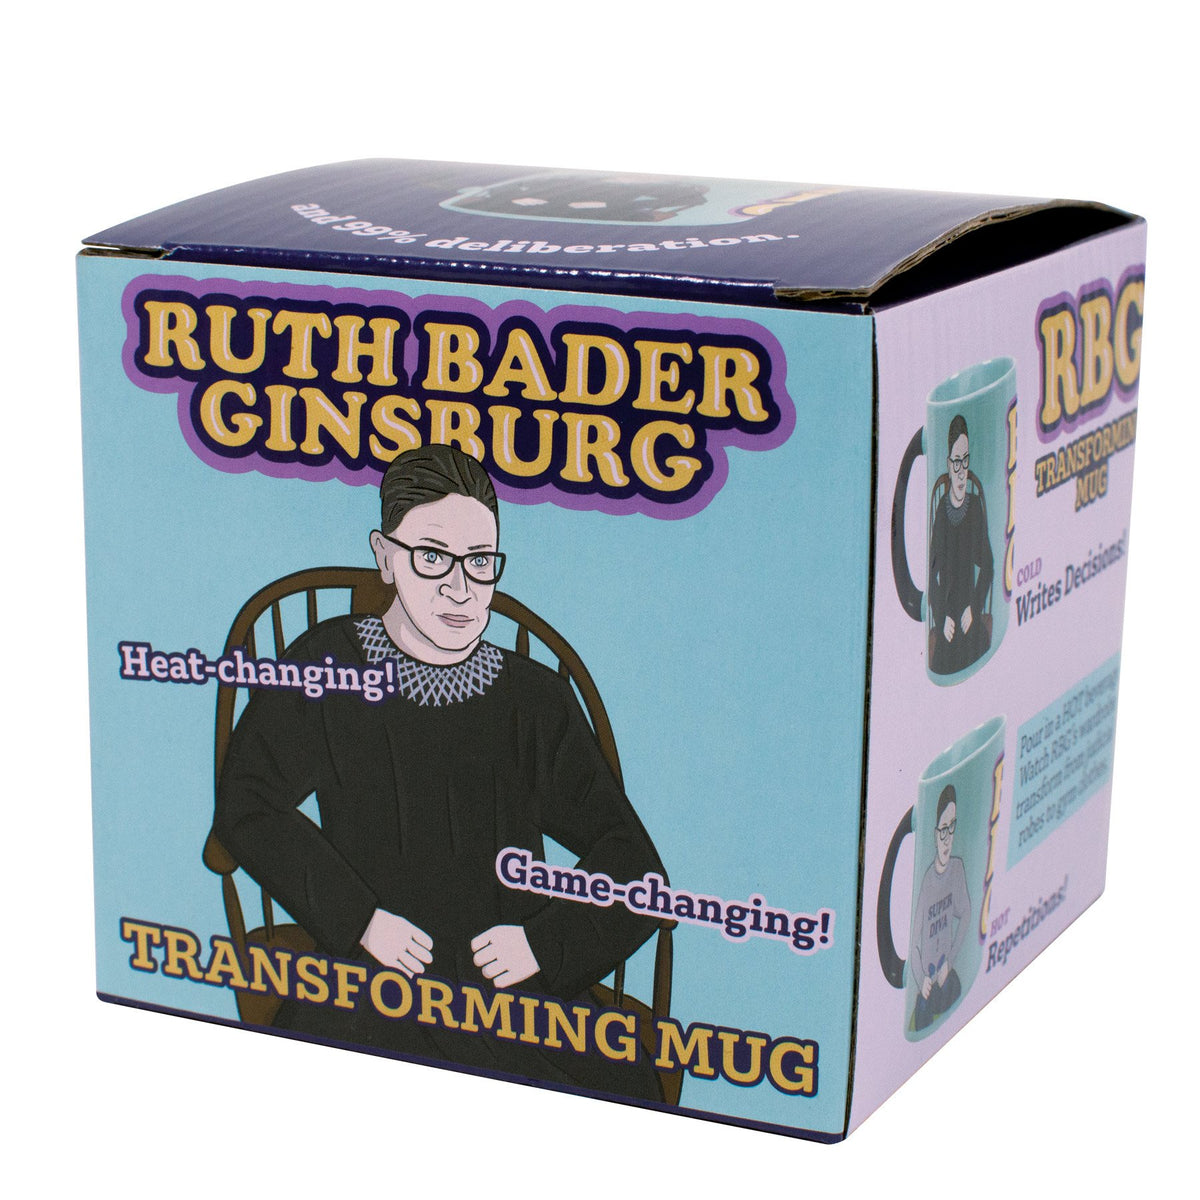 gift box for mug with drawing of ruth bader ginsburg in robe with her name in bright yellow with purple highlights